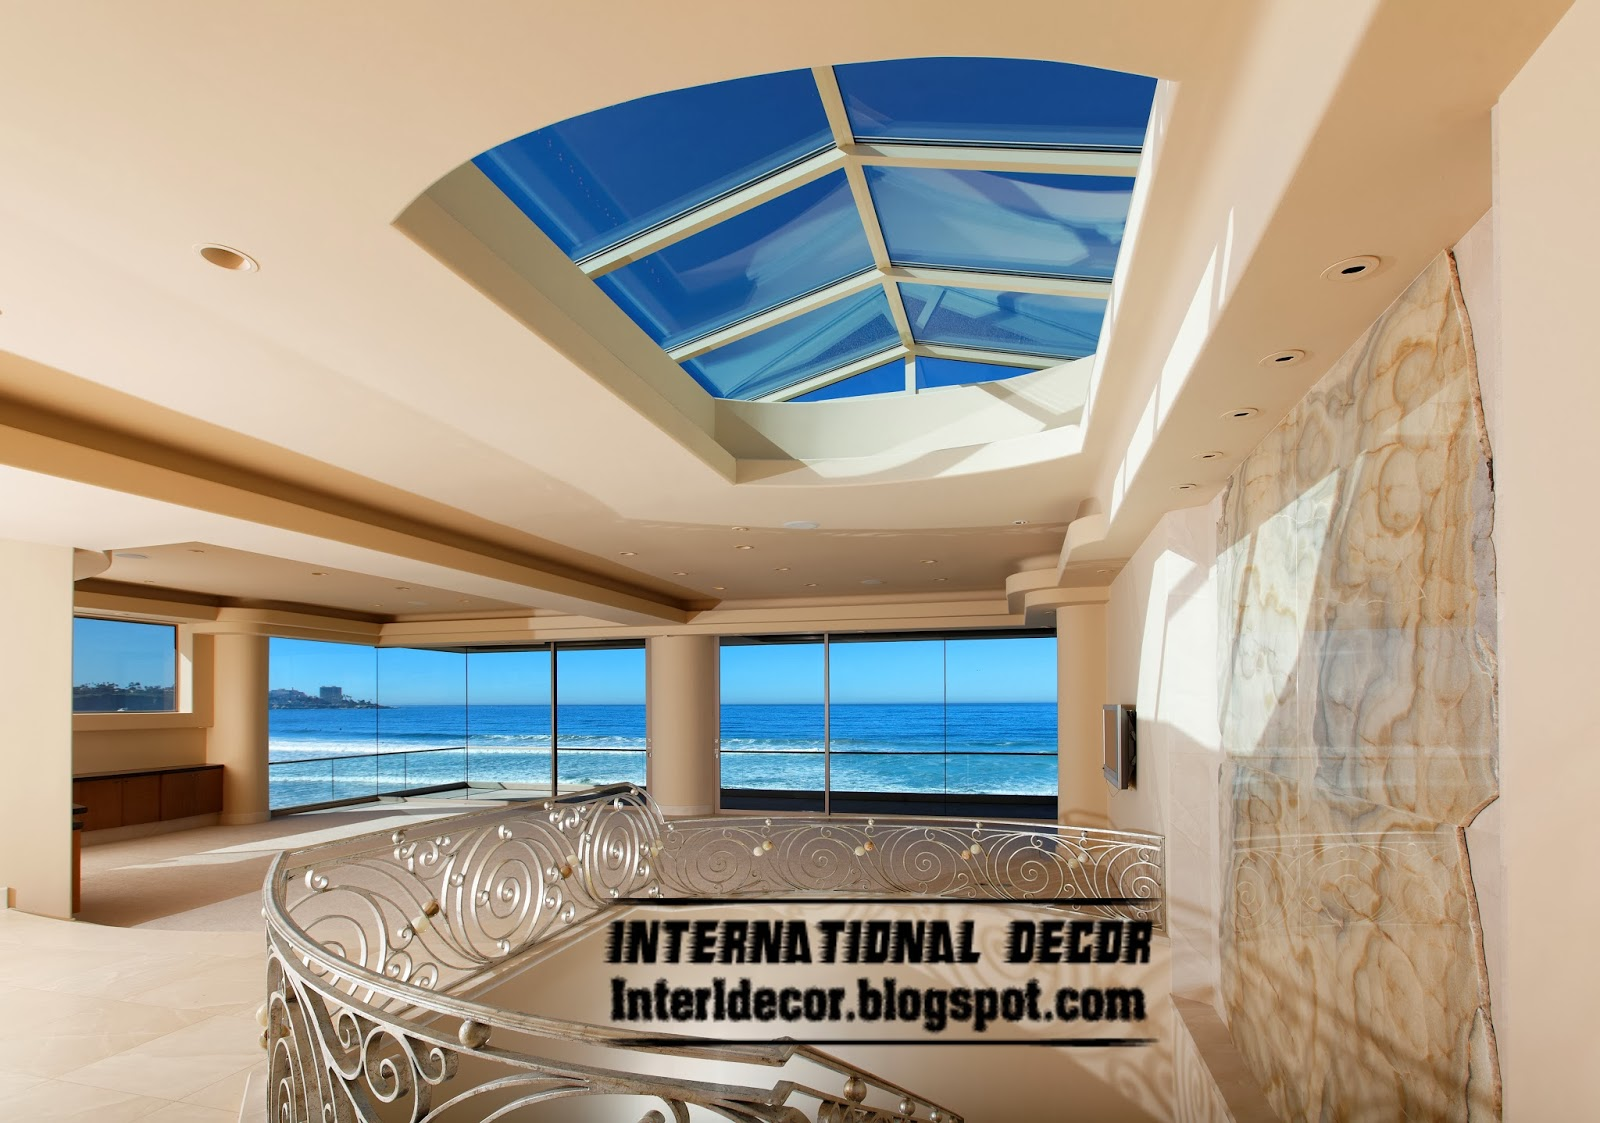 Skylight Designs Living Rooms With Skylightsskylight Design Ideasgood Idea When